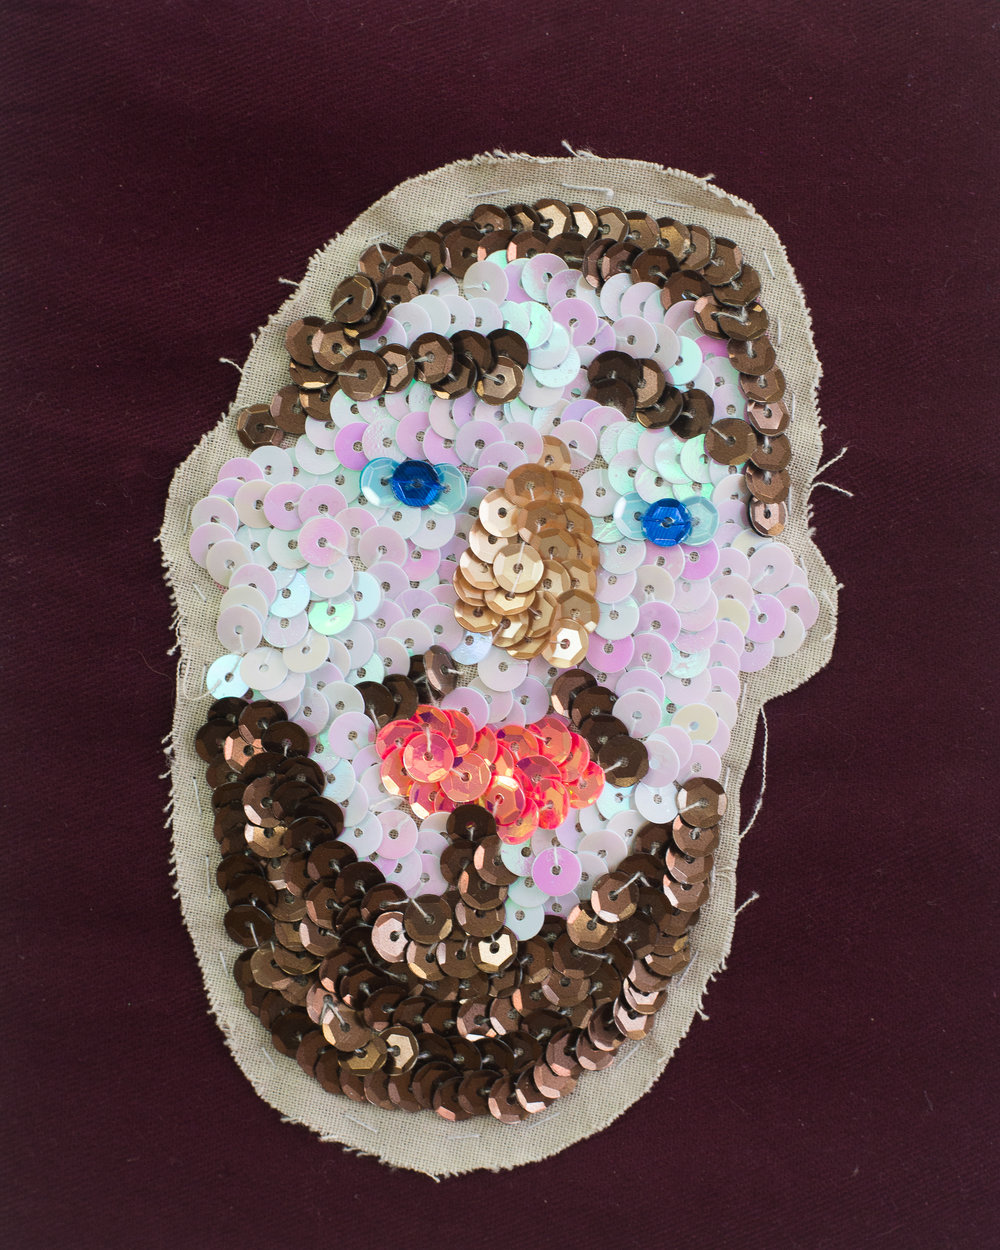 Duncan (A talisman for successful tindering)  (Detail) Cotton, sequins, paper mache, dowel, glitter